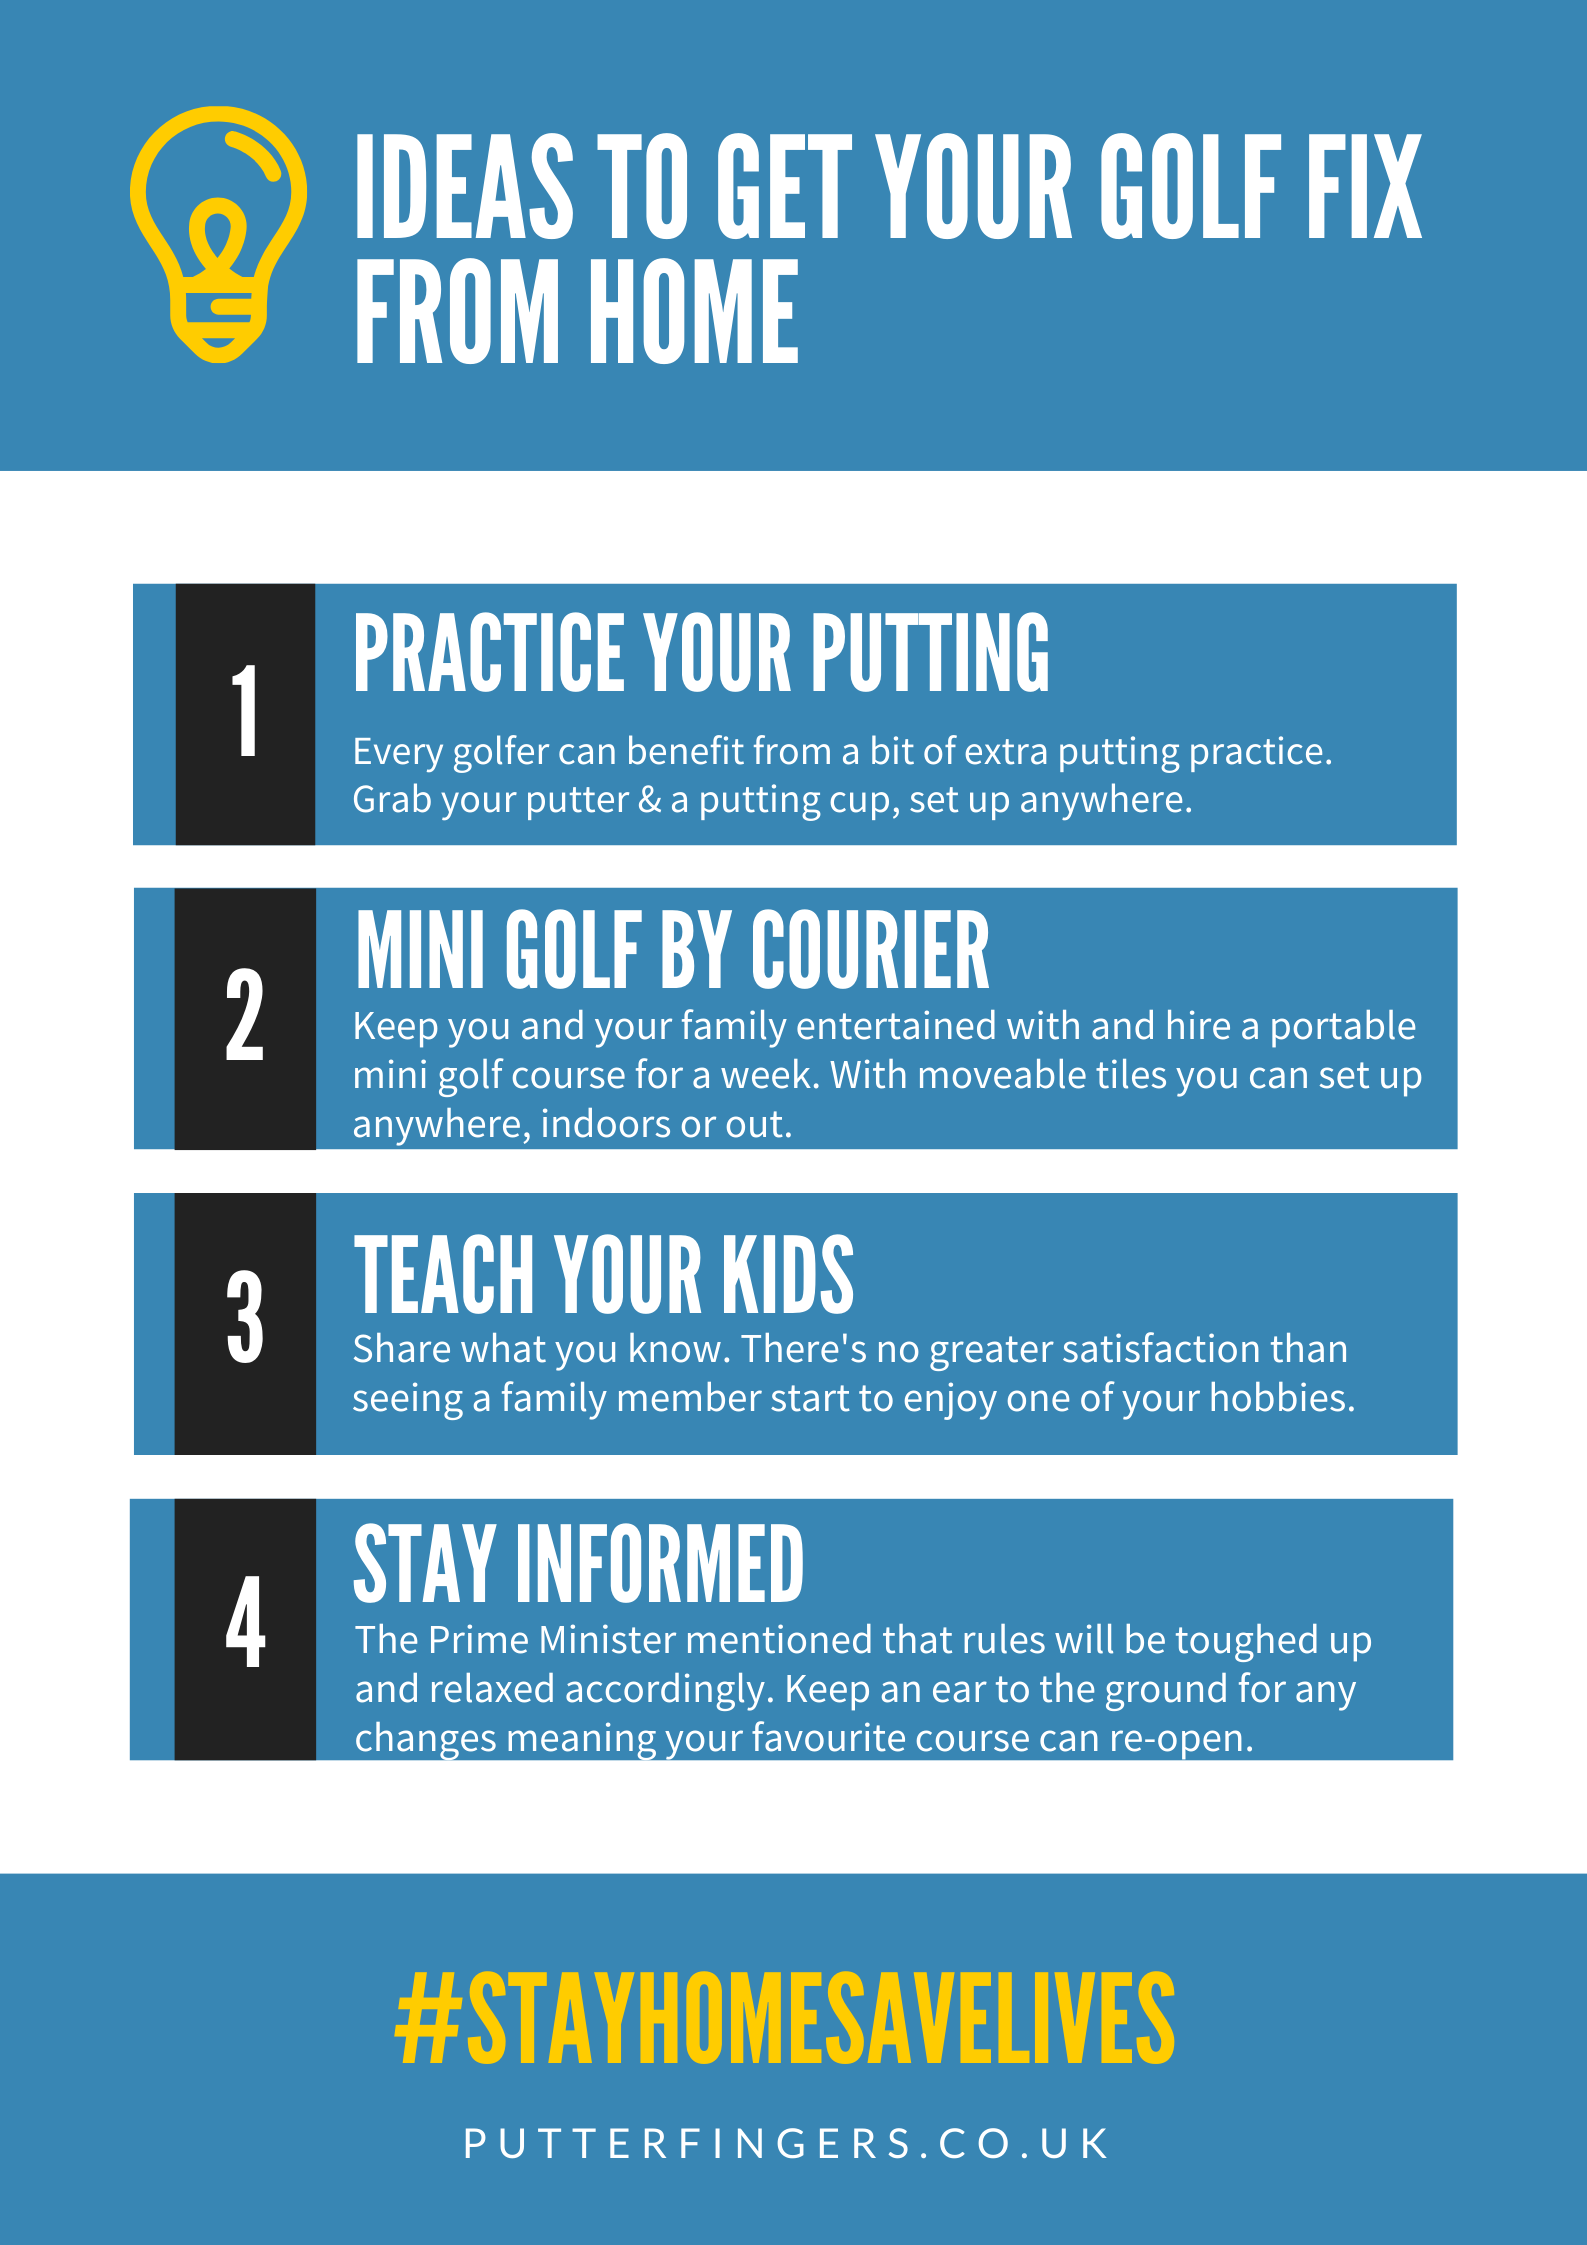 Golfing from home - ideas for practising golf from home during self isolation